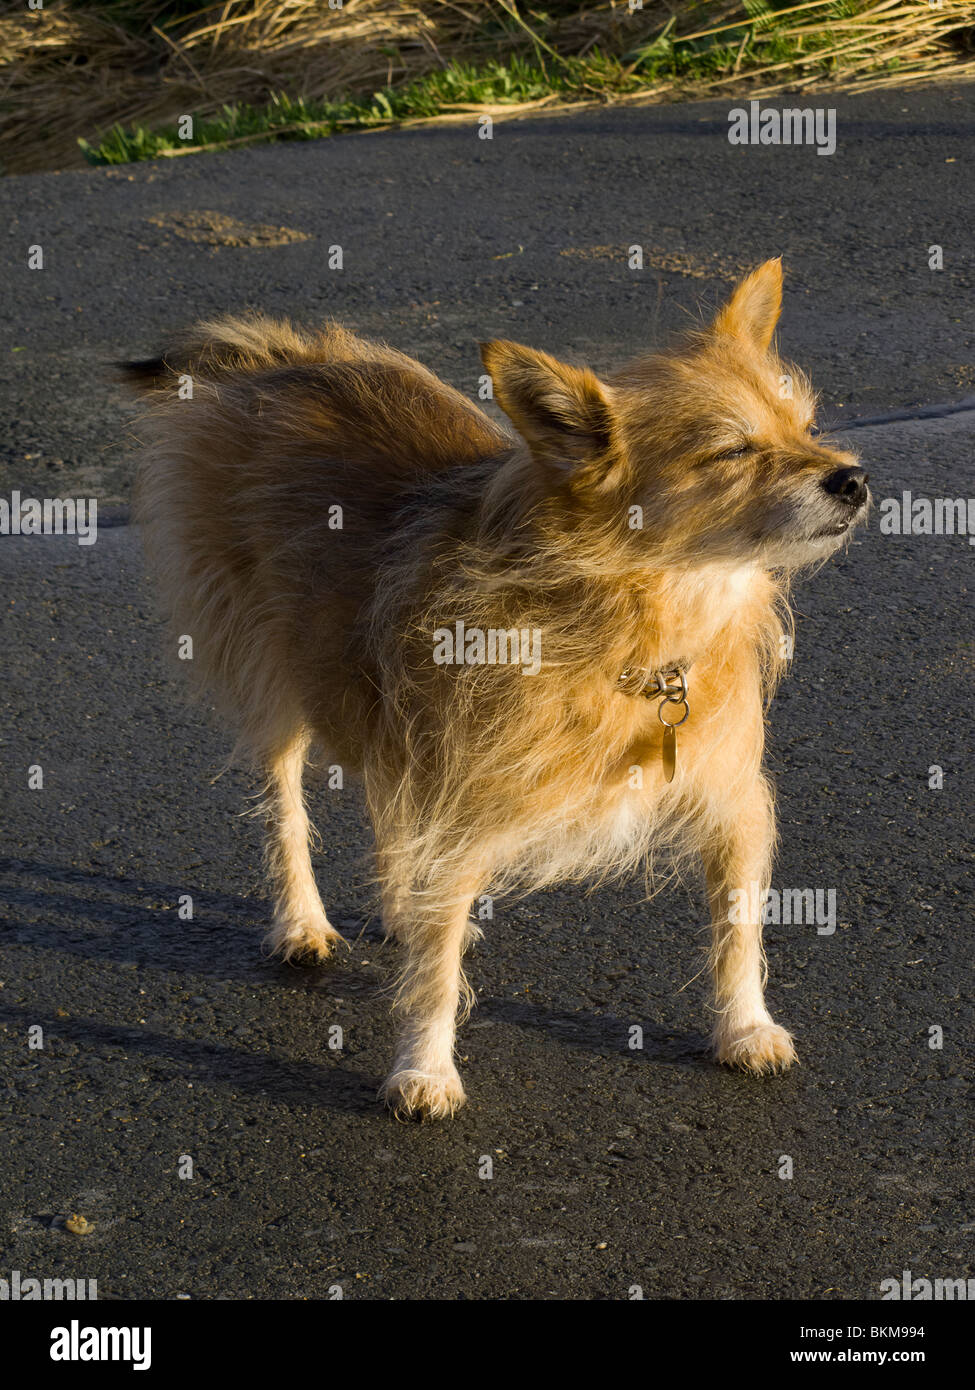 A small old ginger terrier dog in the evening sun - Stock Image